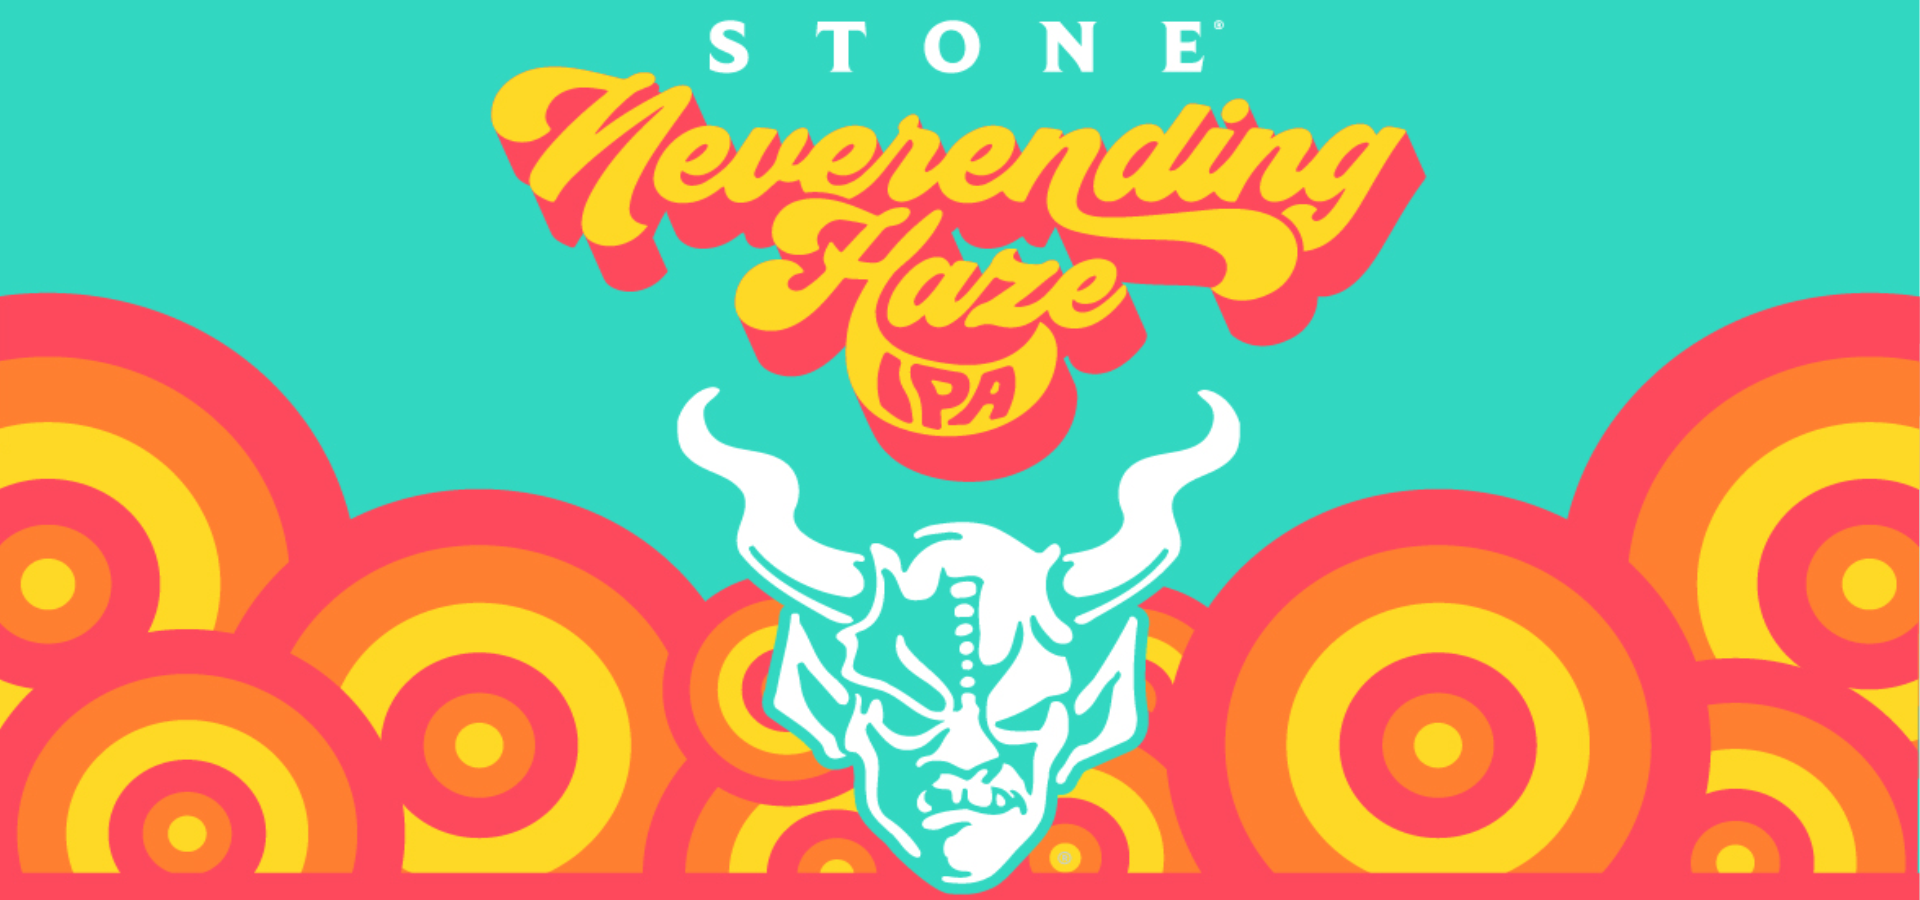 Stone Brewing Perfects Big Flavor at Low ABV; Introducing Stone Neverending Haze IPA